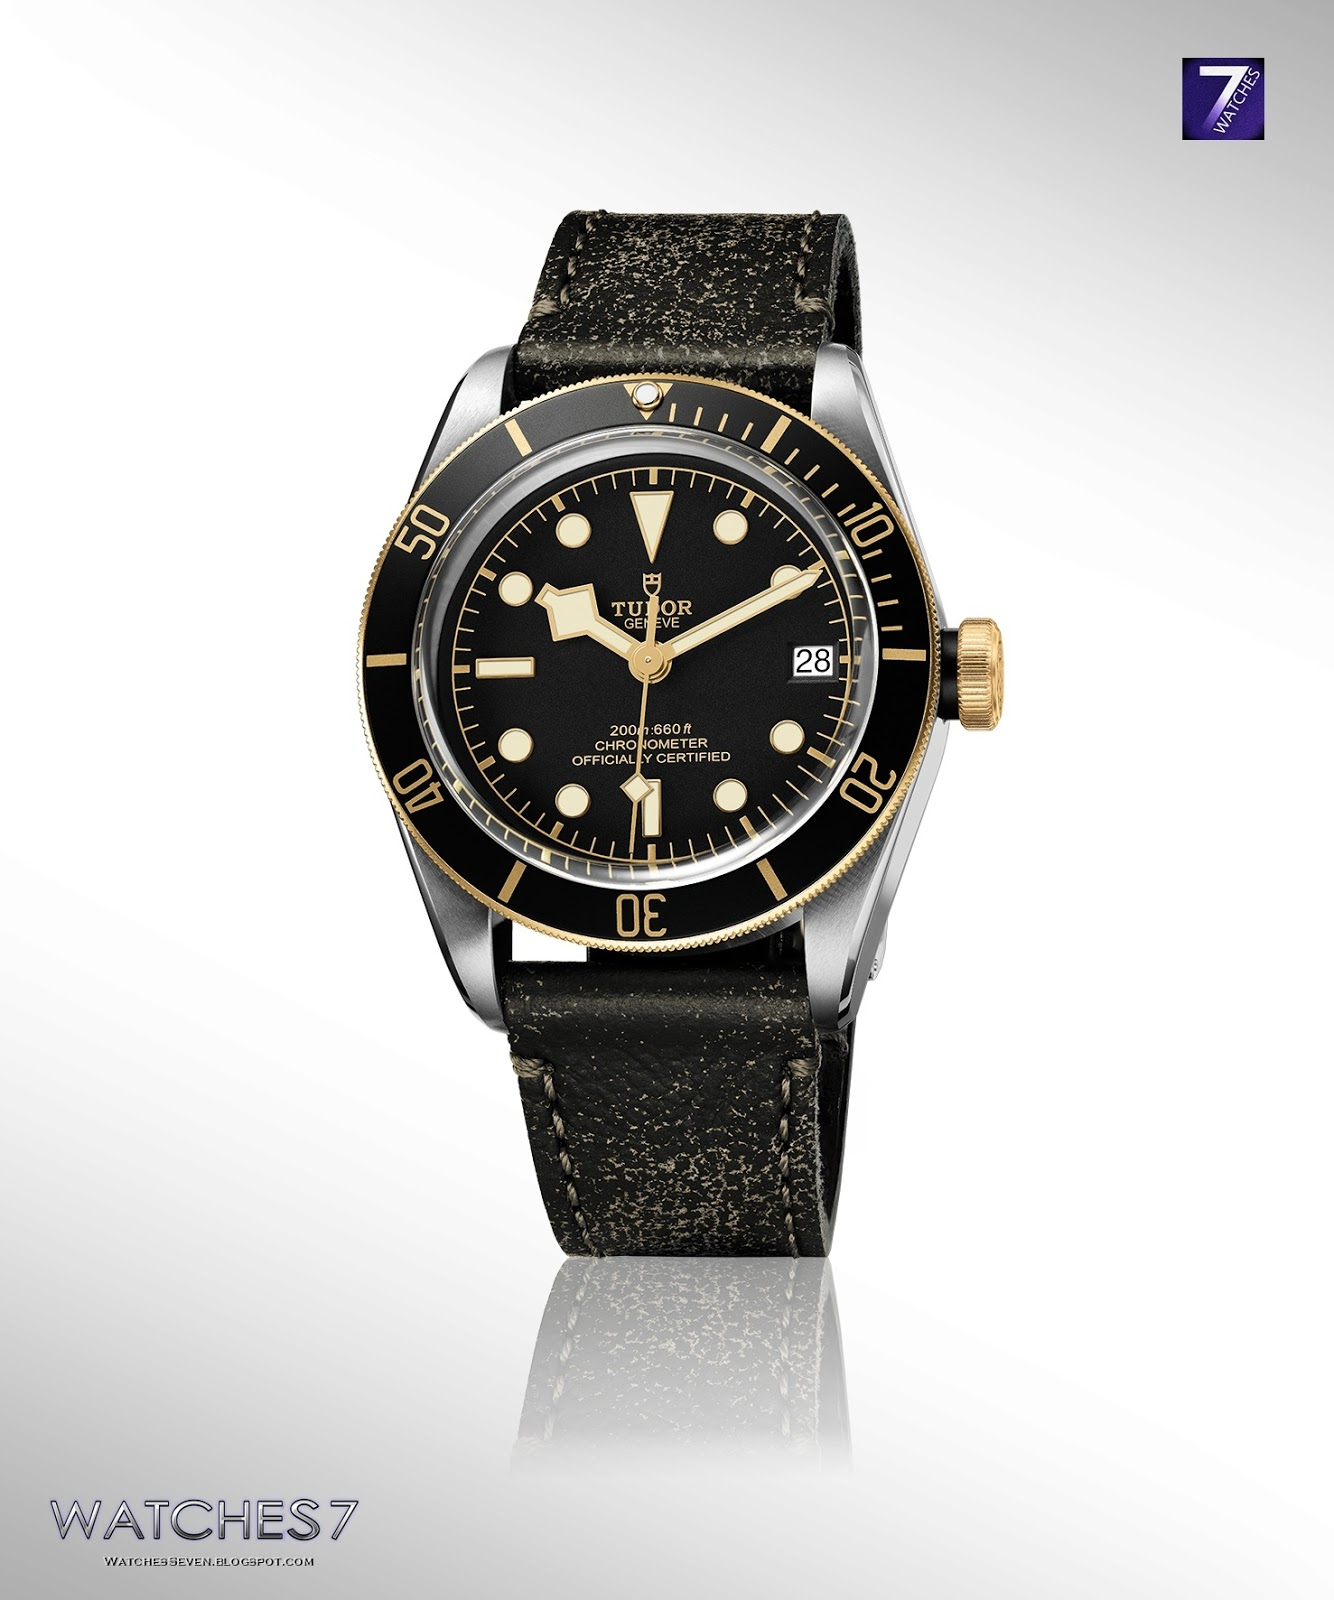 Watches 7: TUDOR – Heritage Black Bay S&G